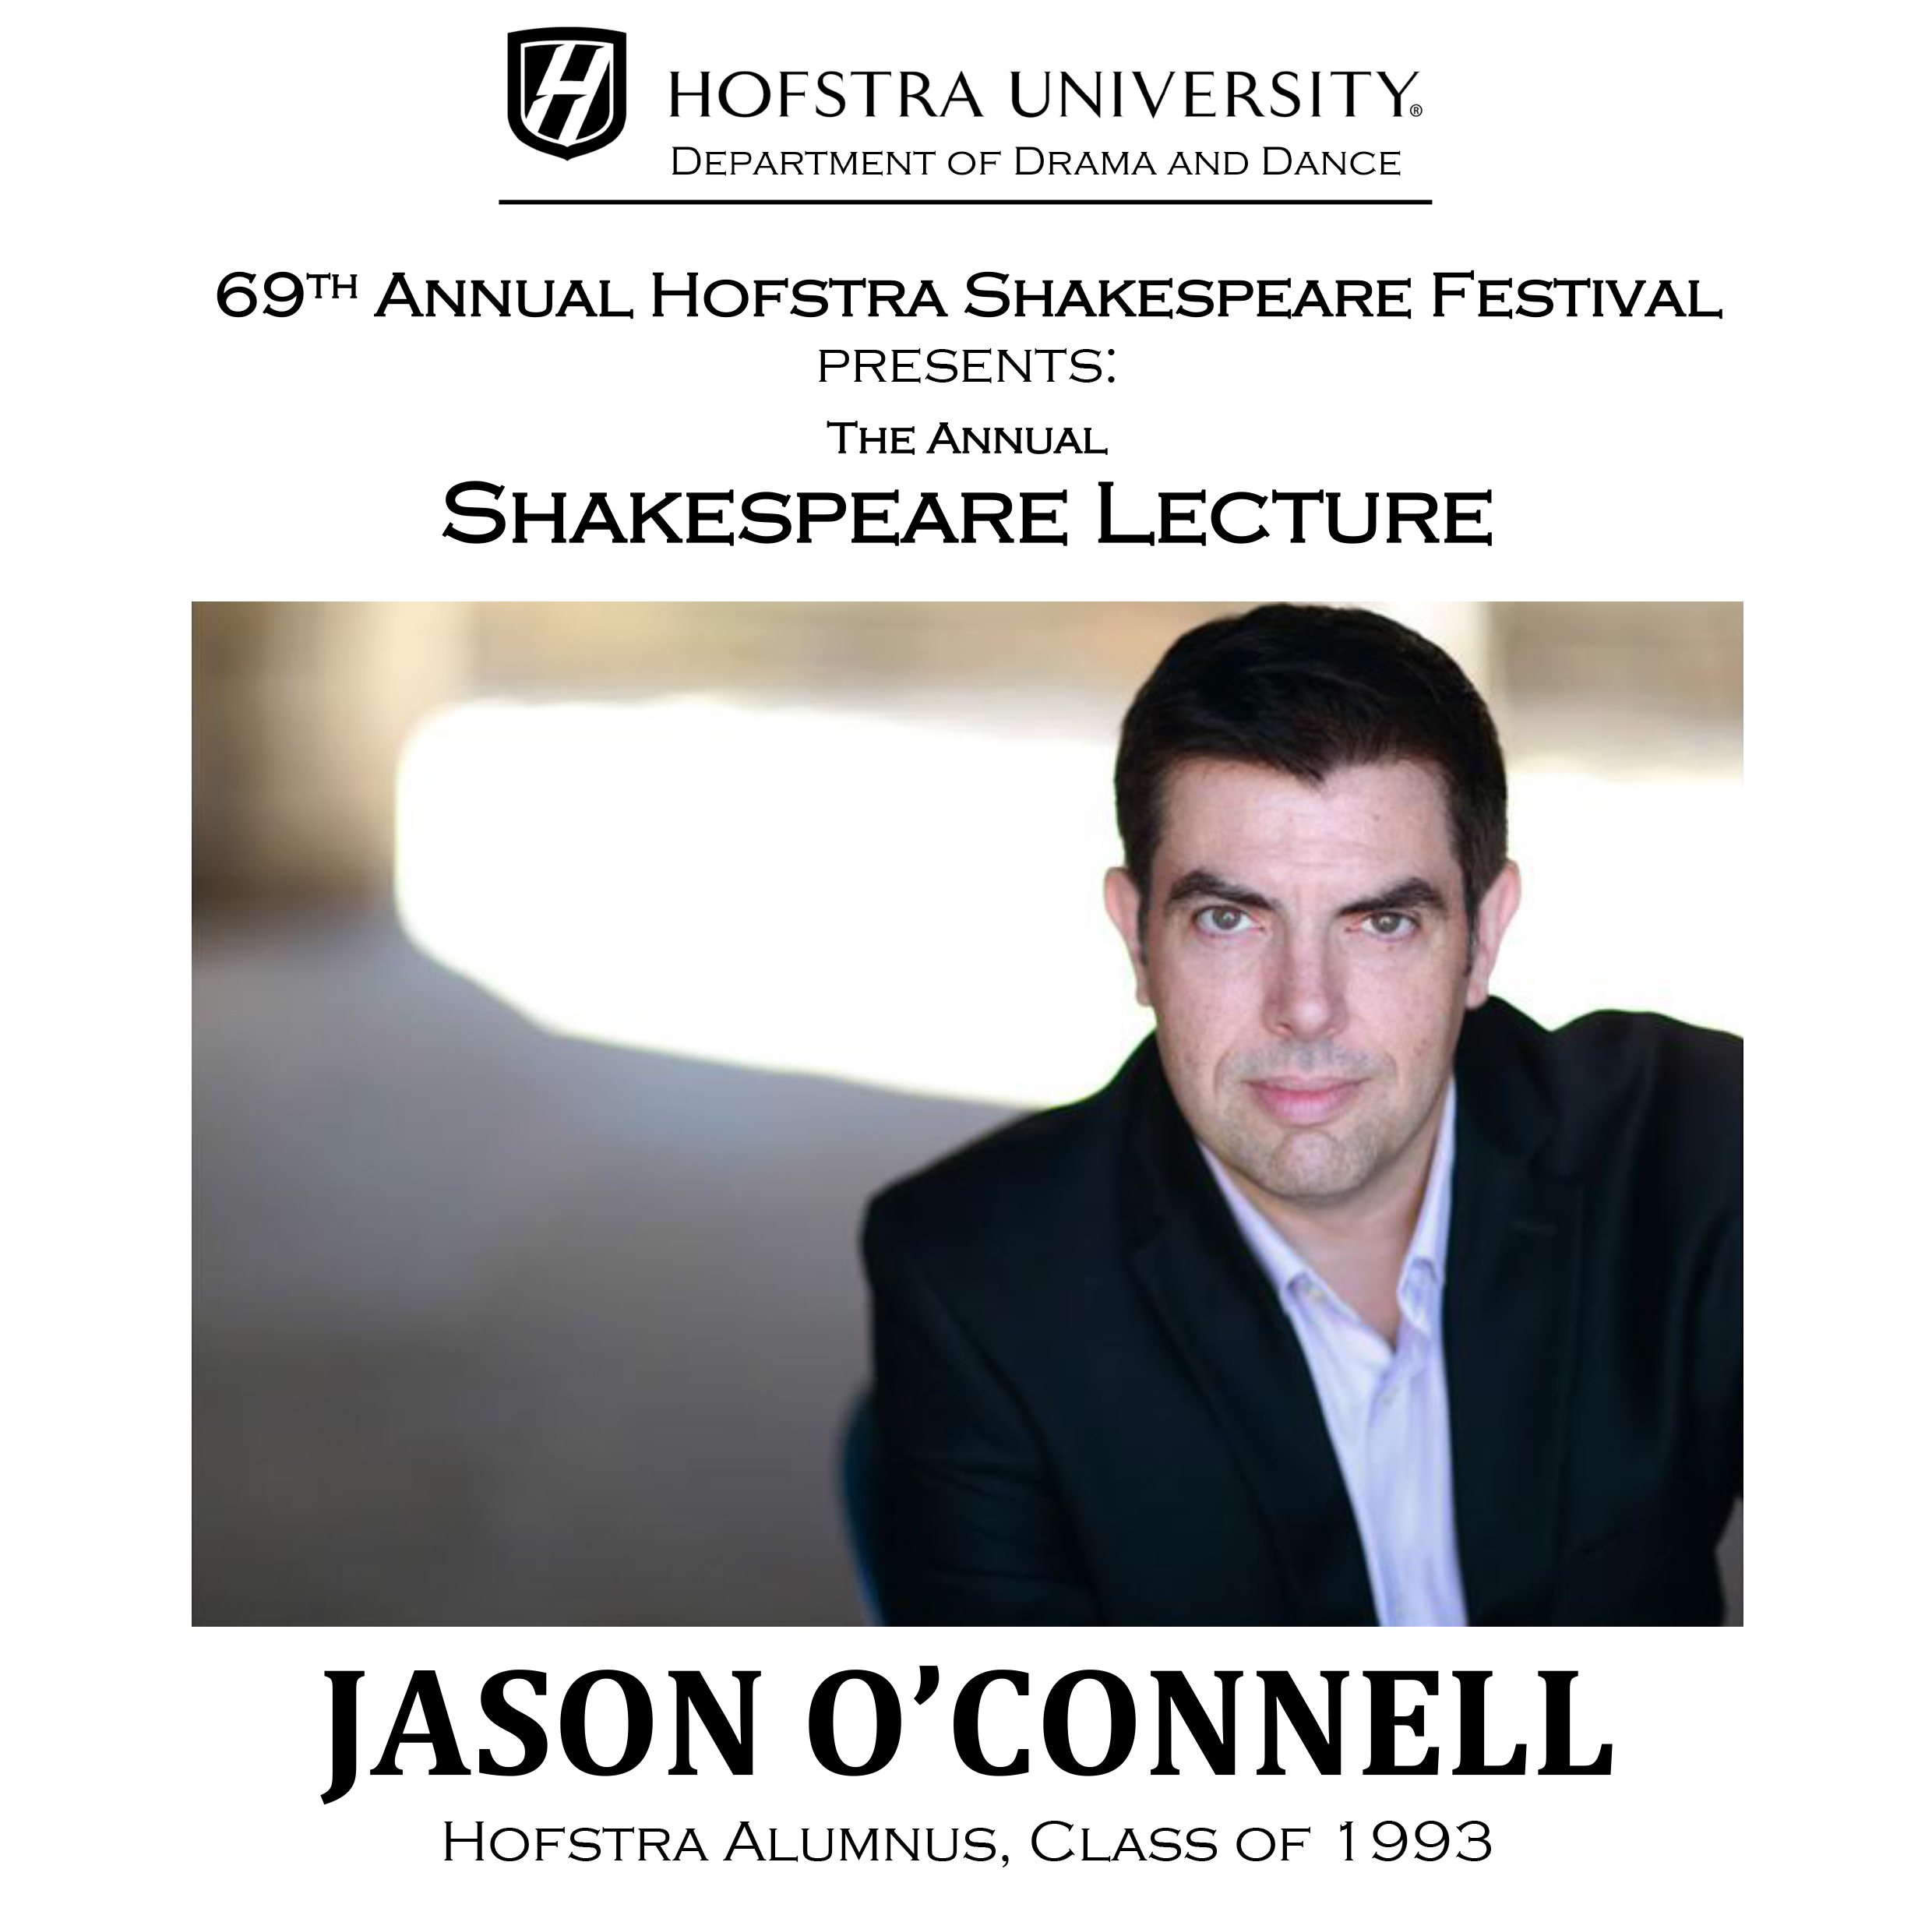 Hofstra University, Department of Drama and Dance, The 69th Annual Hofstra Shakespeare Festival presents the Annual Shakespeare Lecture. Jason O'Connell Hofstra Alumnus, Class of 1993